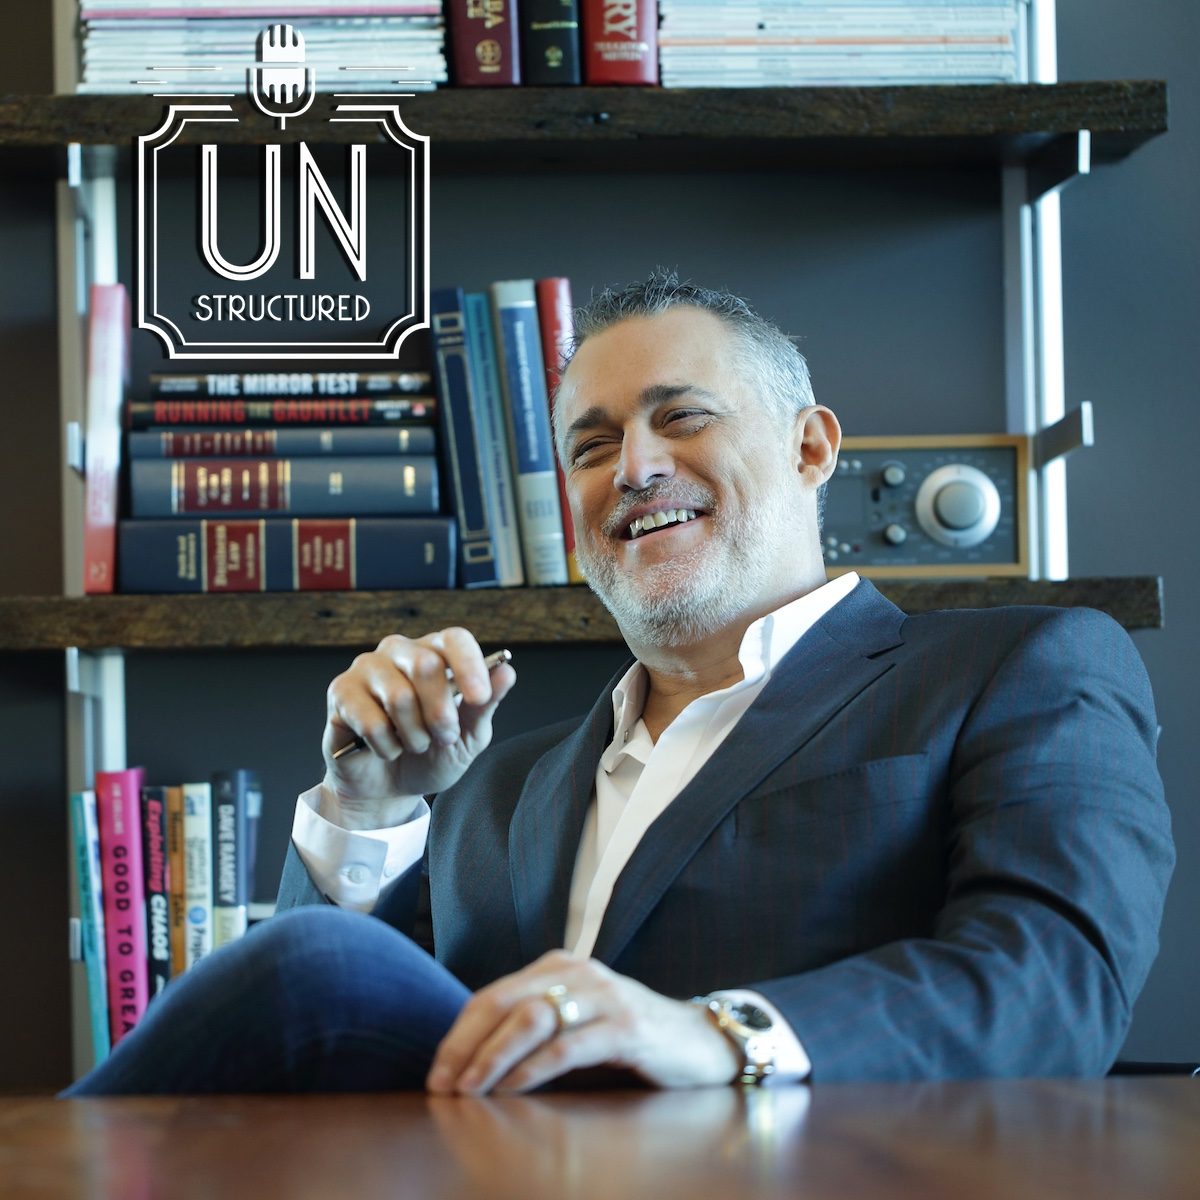 124 - Jeffrey Hayzlett runs the C-Suite Television and Radio Networks